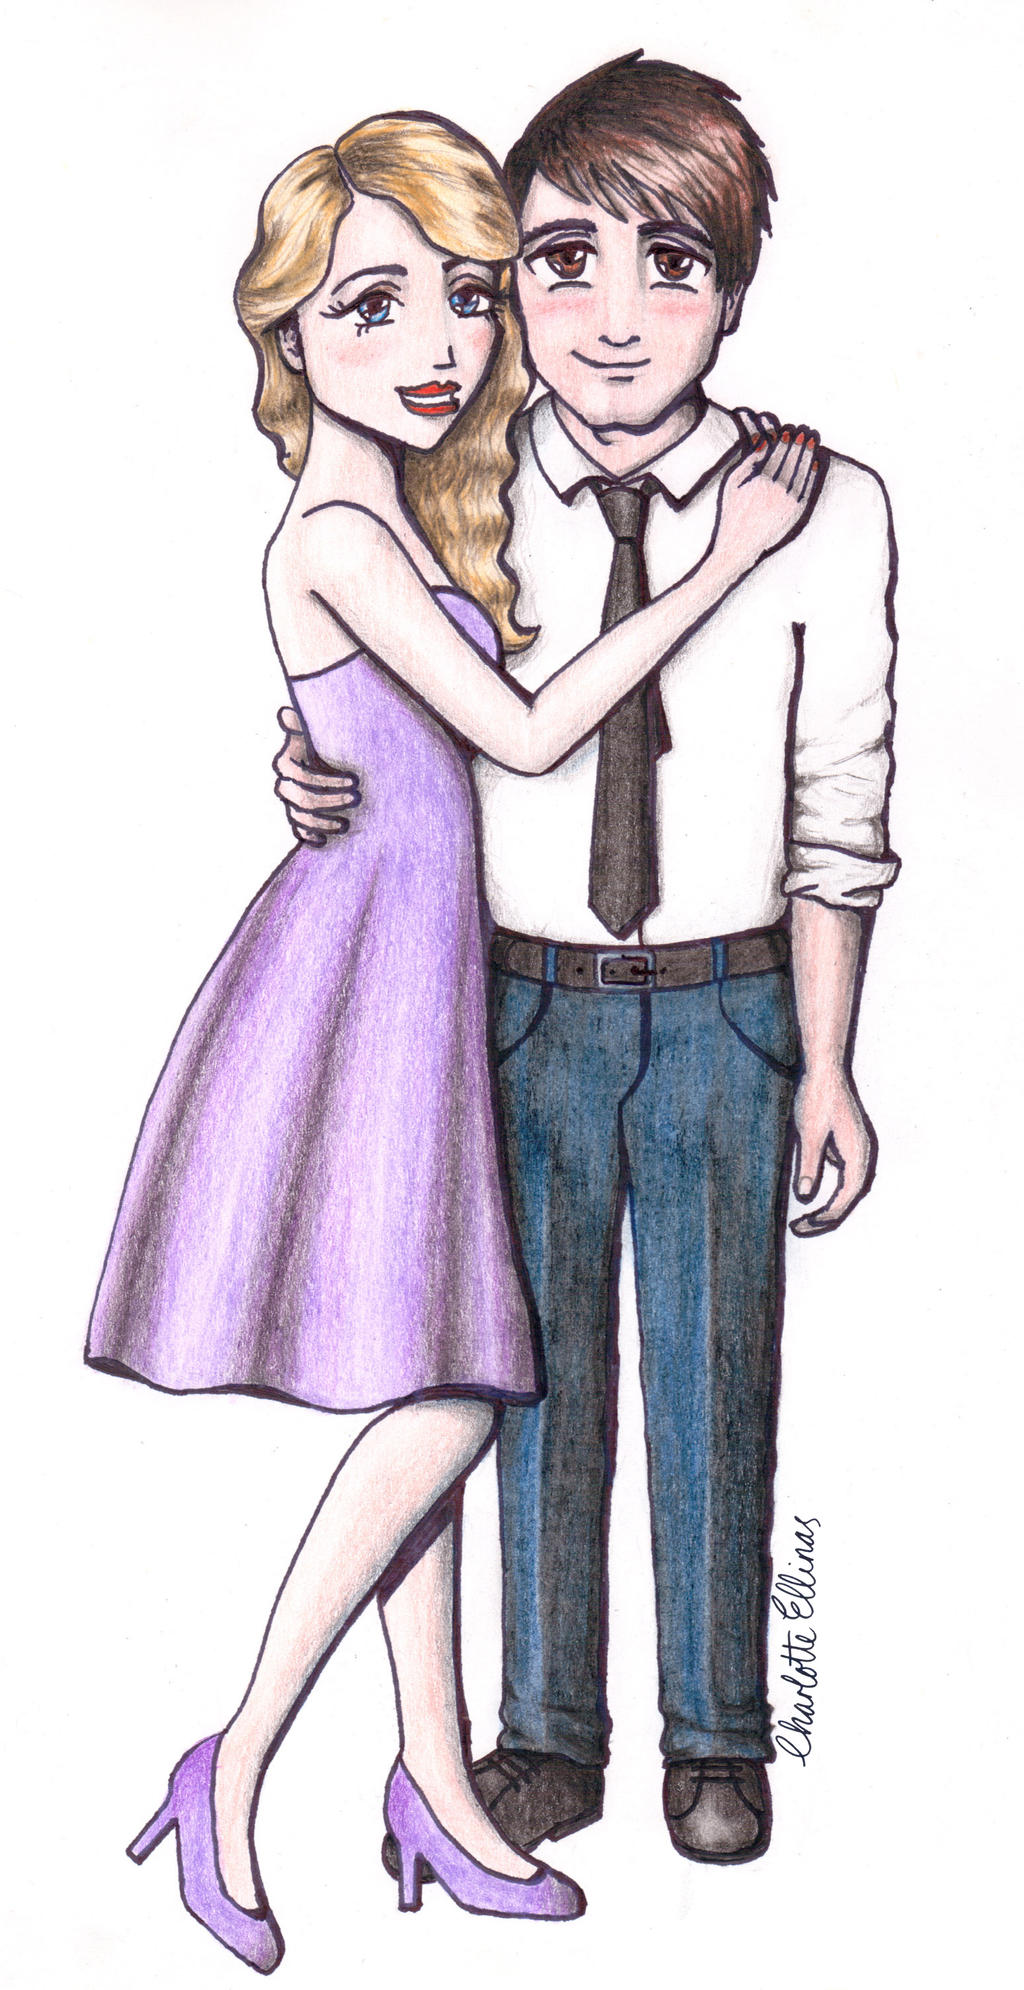 Taylor Swift And Adam Young Enchanted By Artbycharlotte On Deviantart